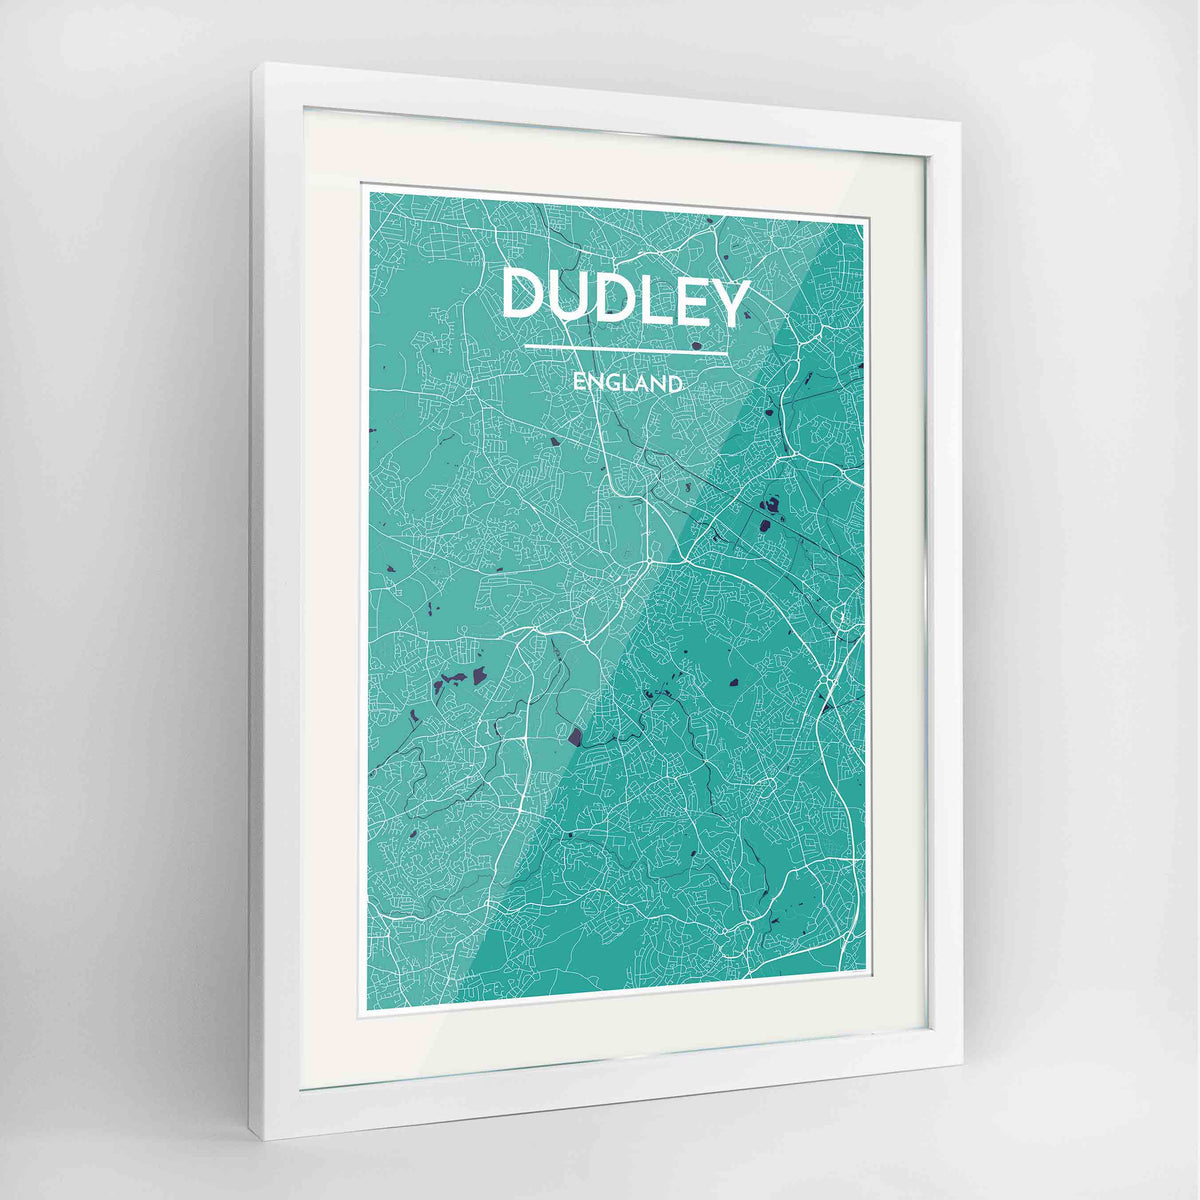 "Framed Dudley Map Art Print 24x36"" Contemporary White frame Point Two Design Group"